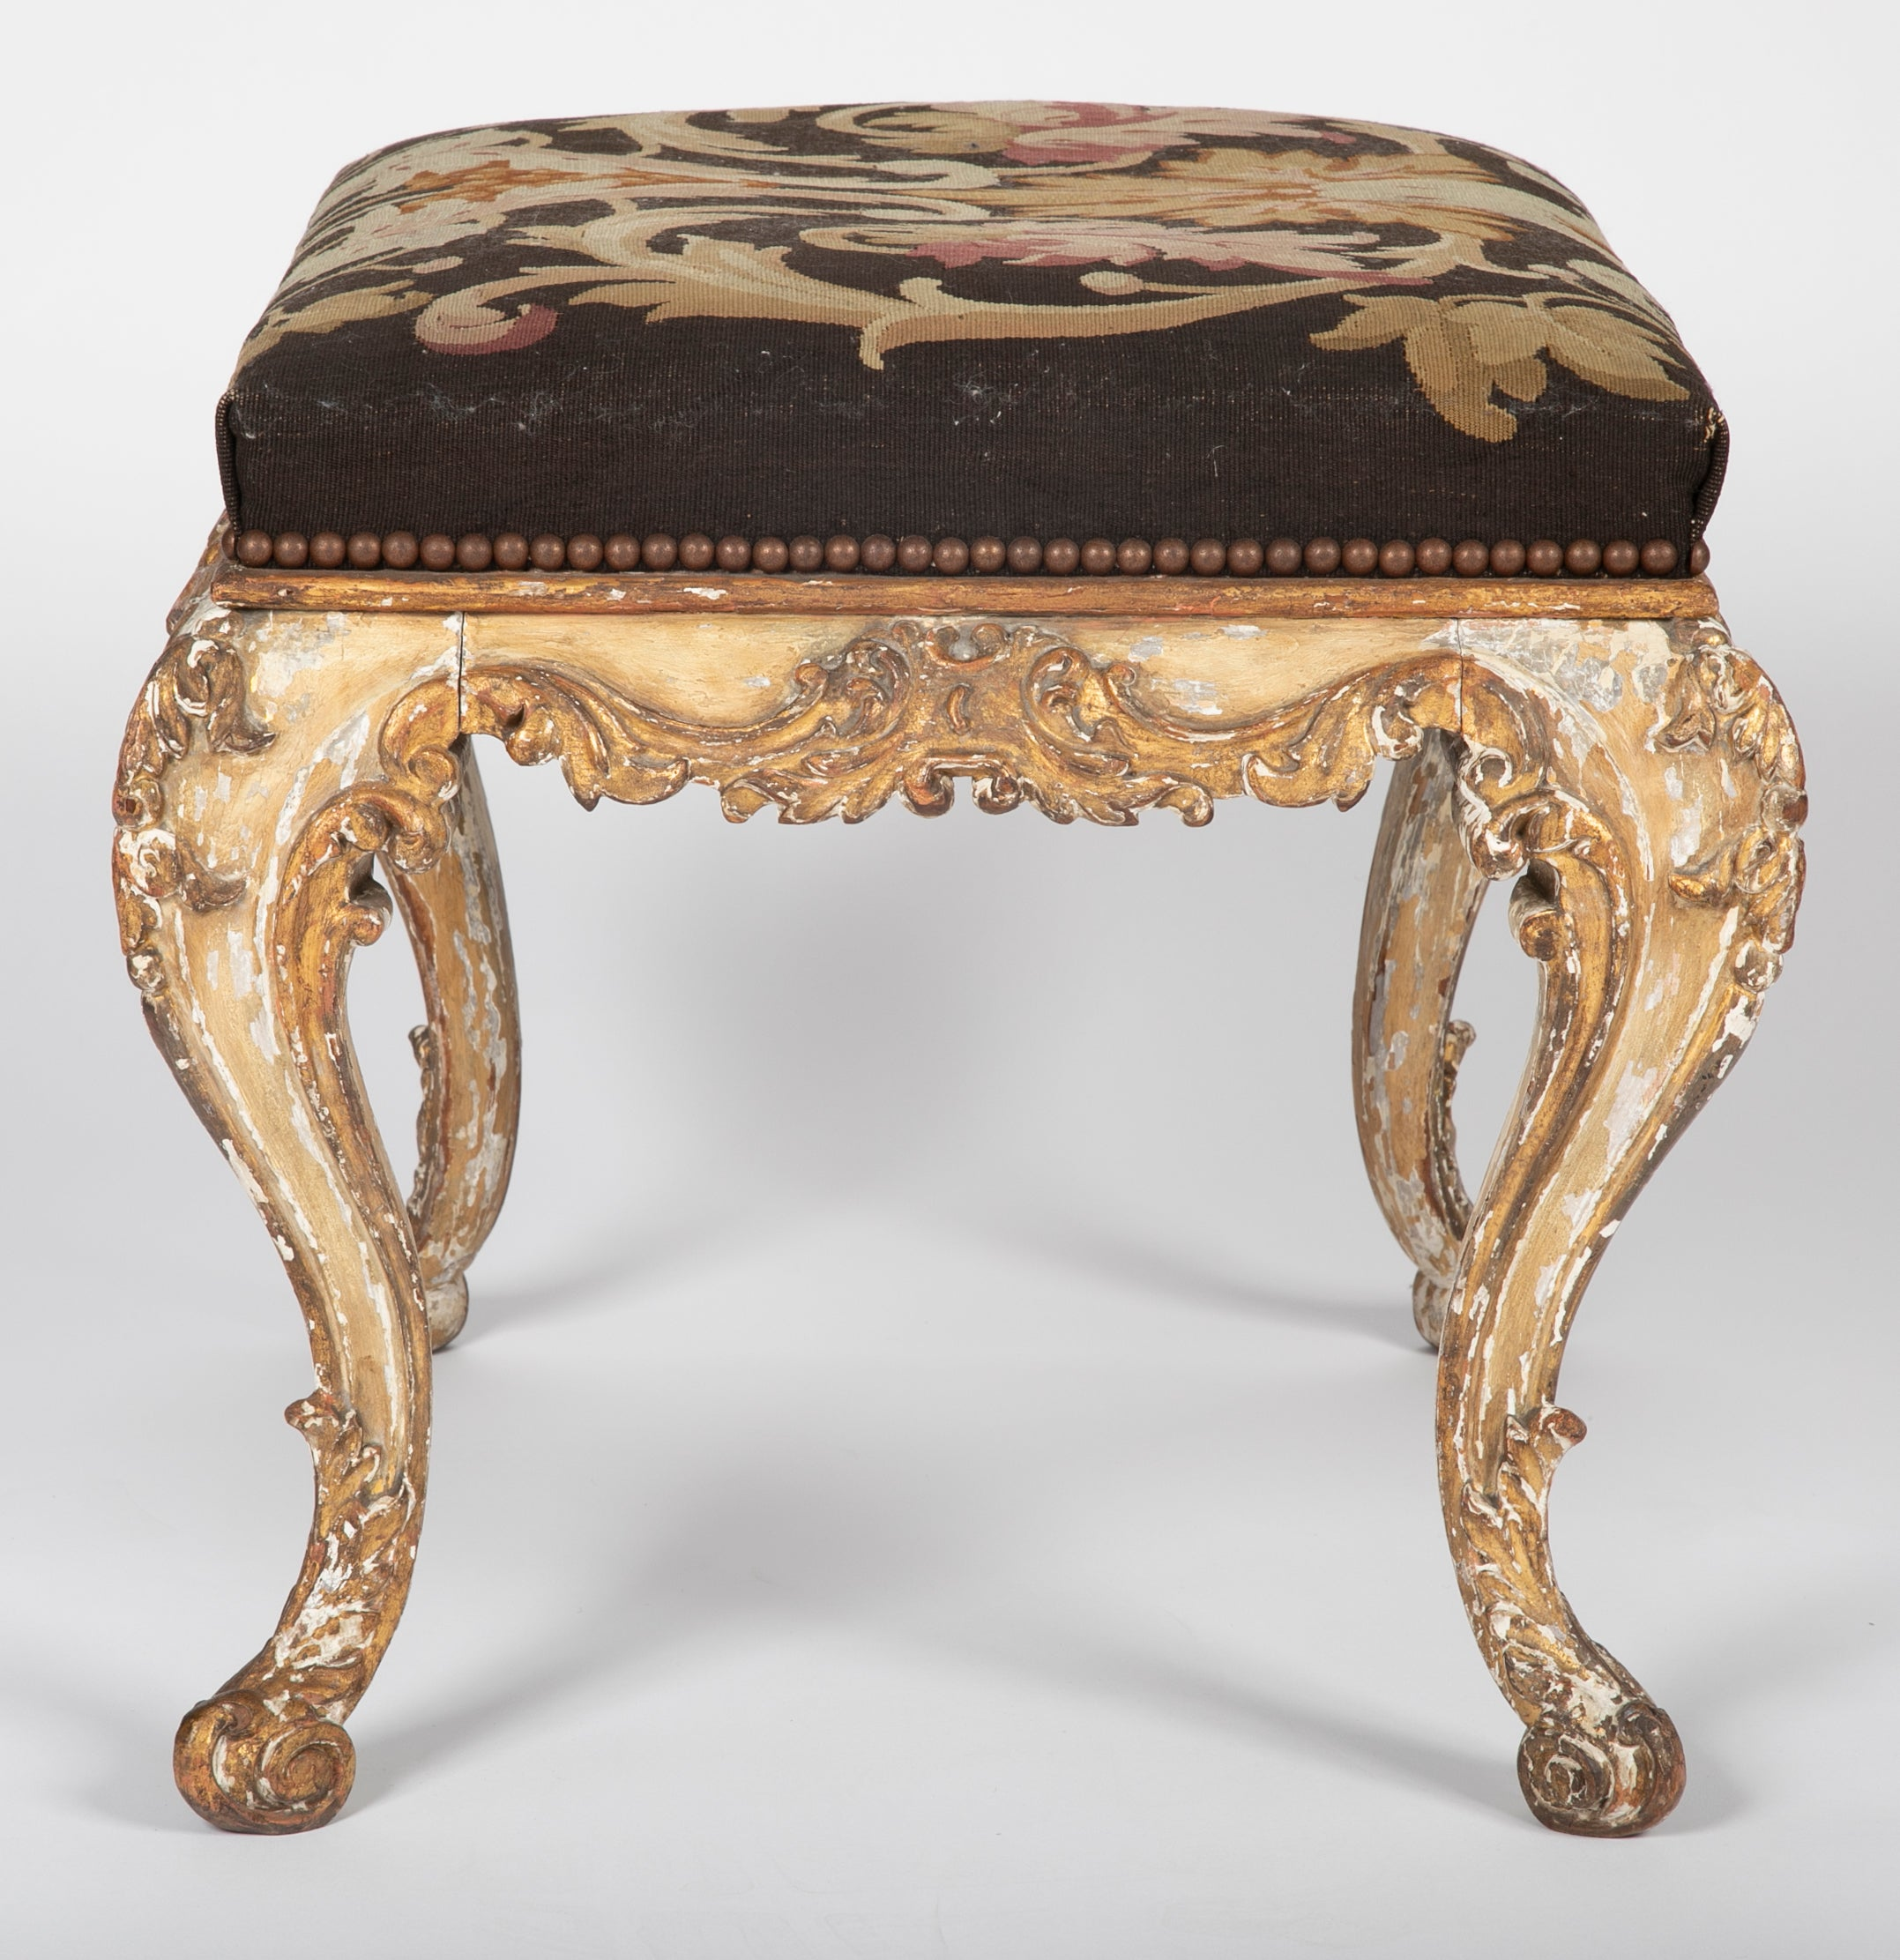 French Painted & Gilt Wood 18th Century Stools with Aubusson Tapestry Seats